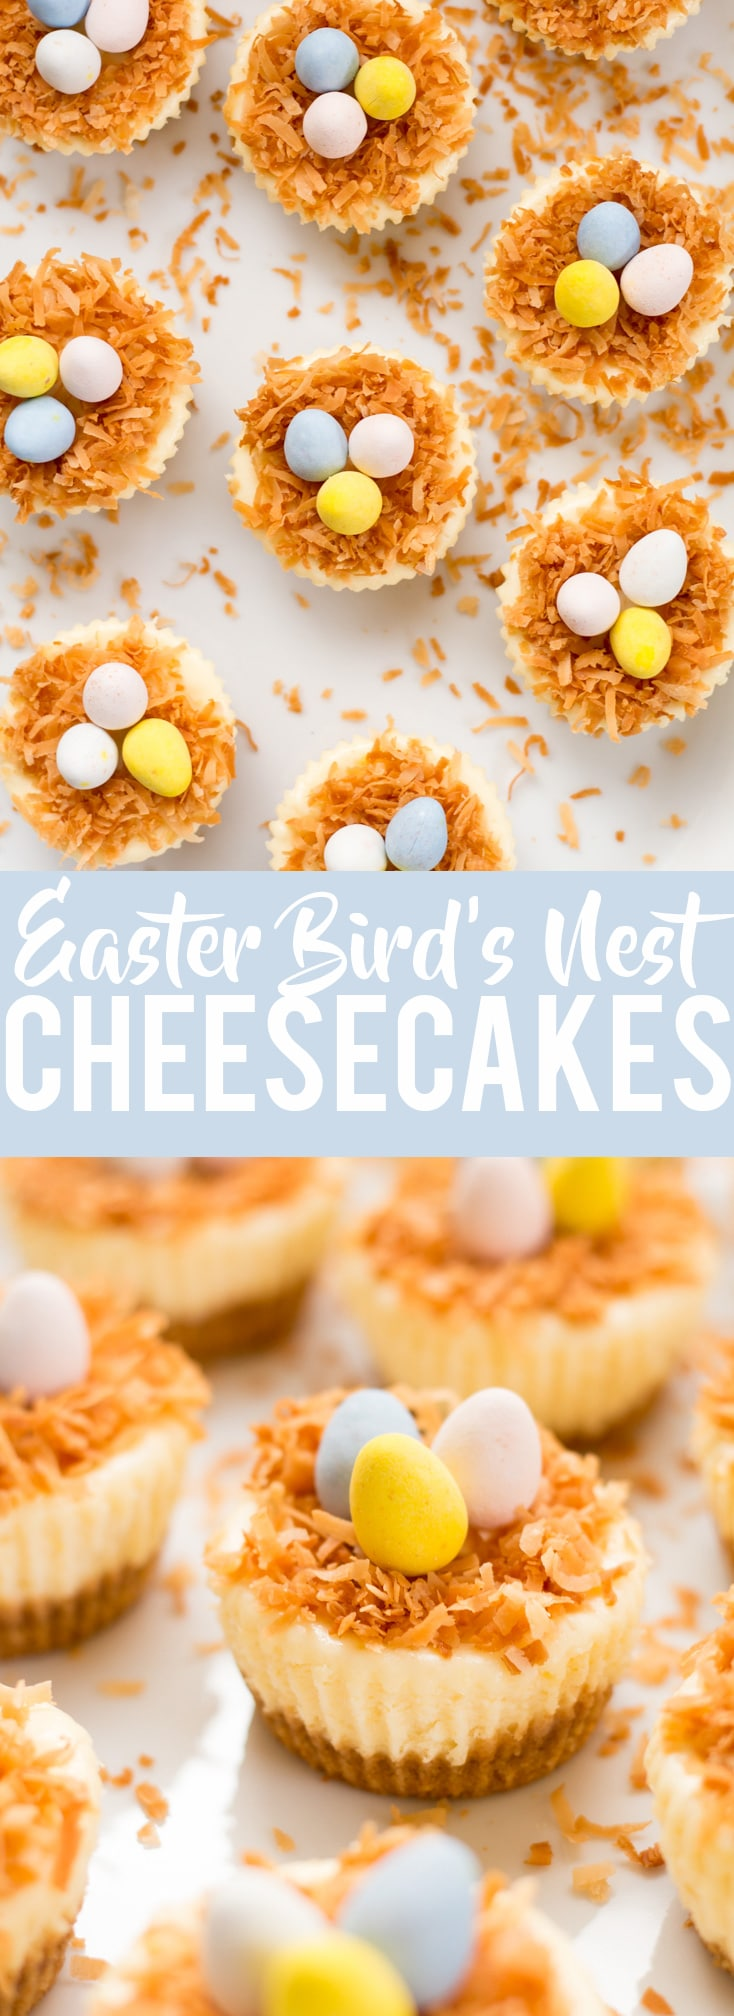 Easter Birds Nest Mini Cheesecakes | Easter Dessert | Cute Dessert | Mini Cheesecakes |mini eggs